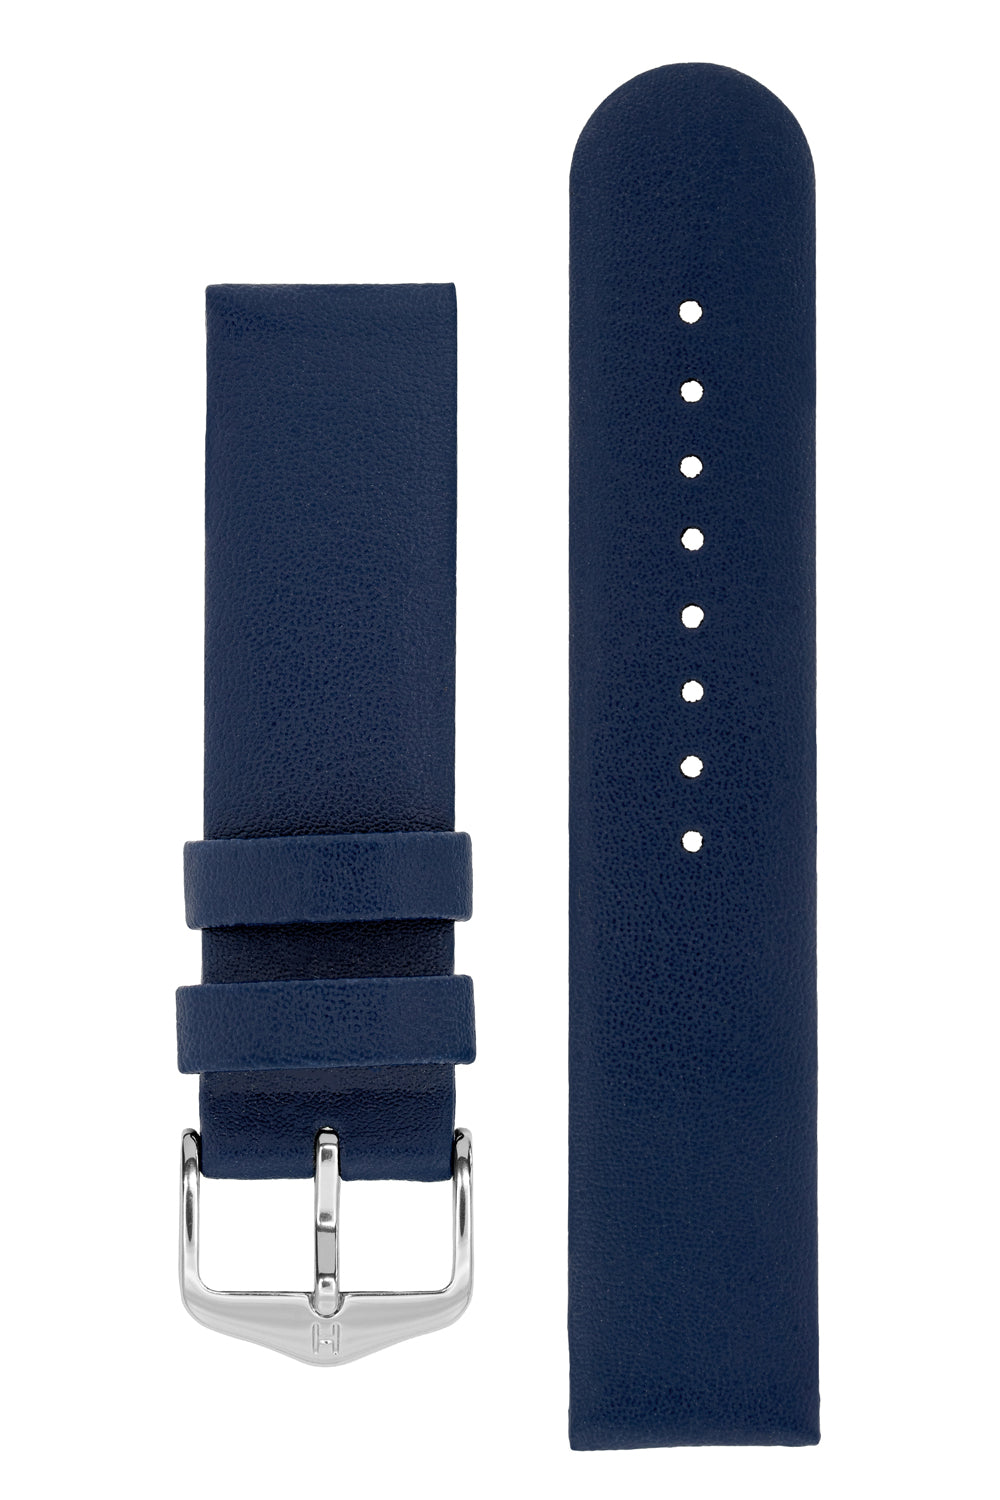 Hirsch SCANDIC Calf Leather Watch Strap in BLUE